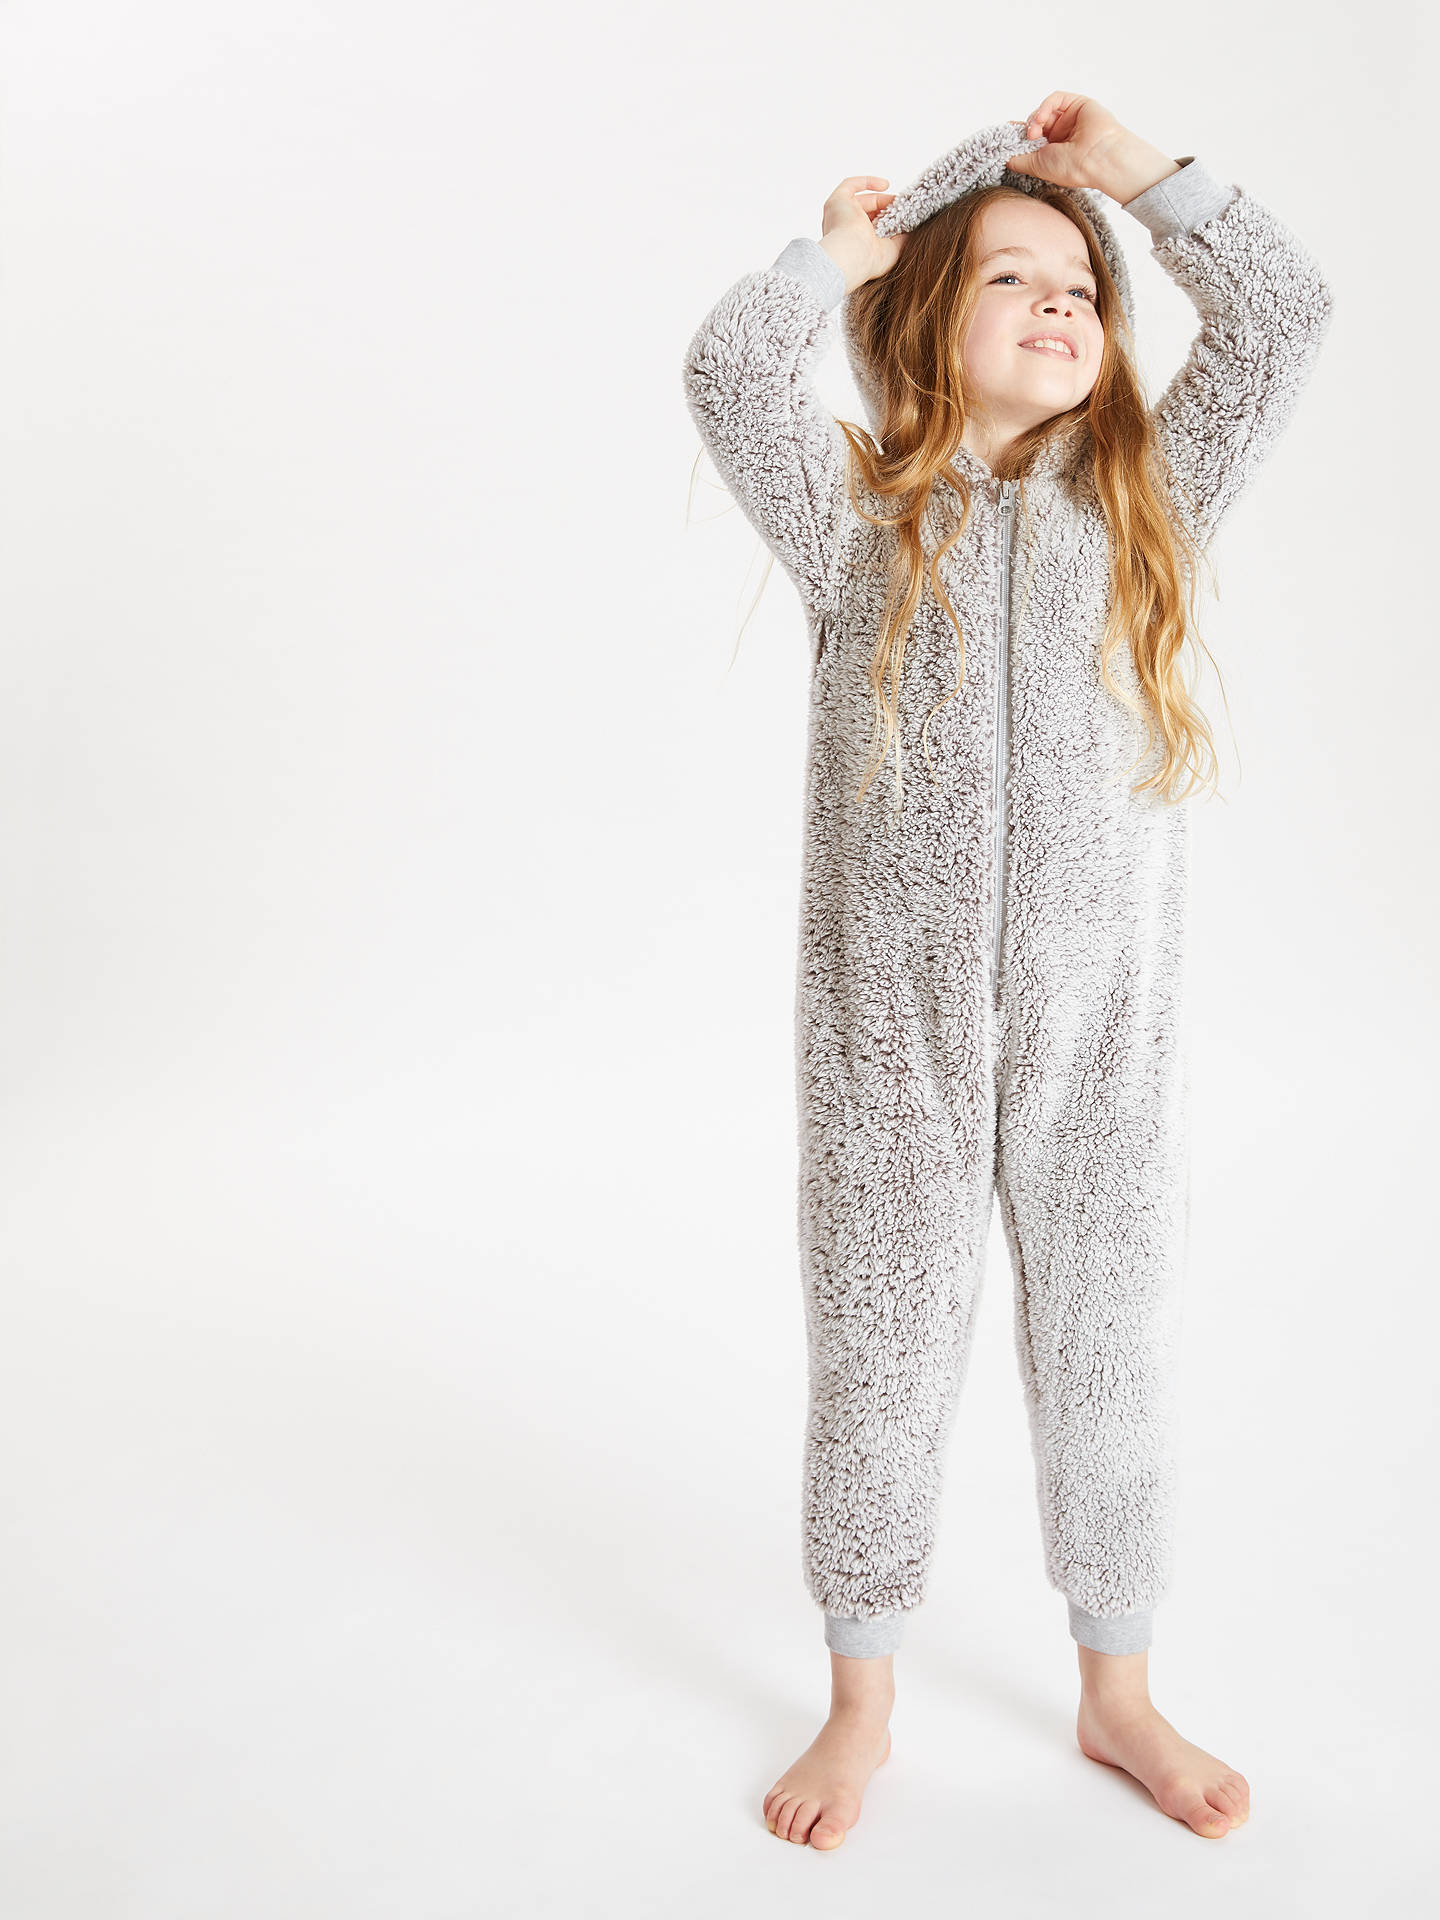 BuyJohn Lewis & Partners Children's Sherpa Fleece Onesie, Grey, 3 years Online at johnlewis.com